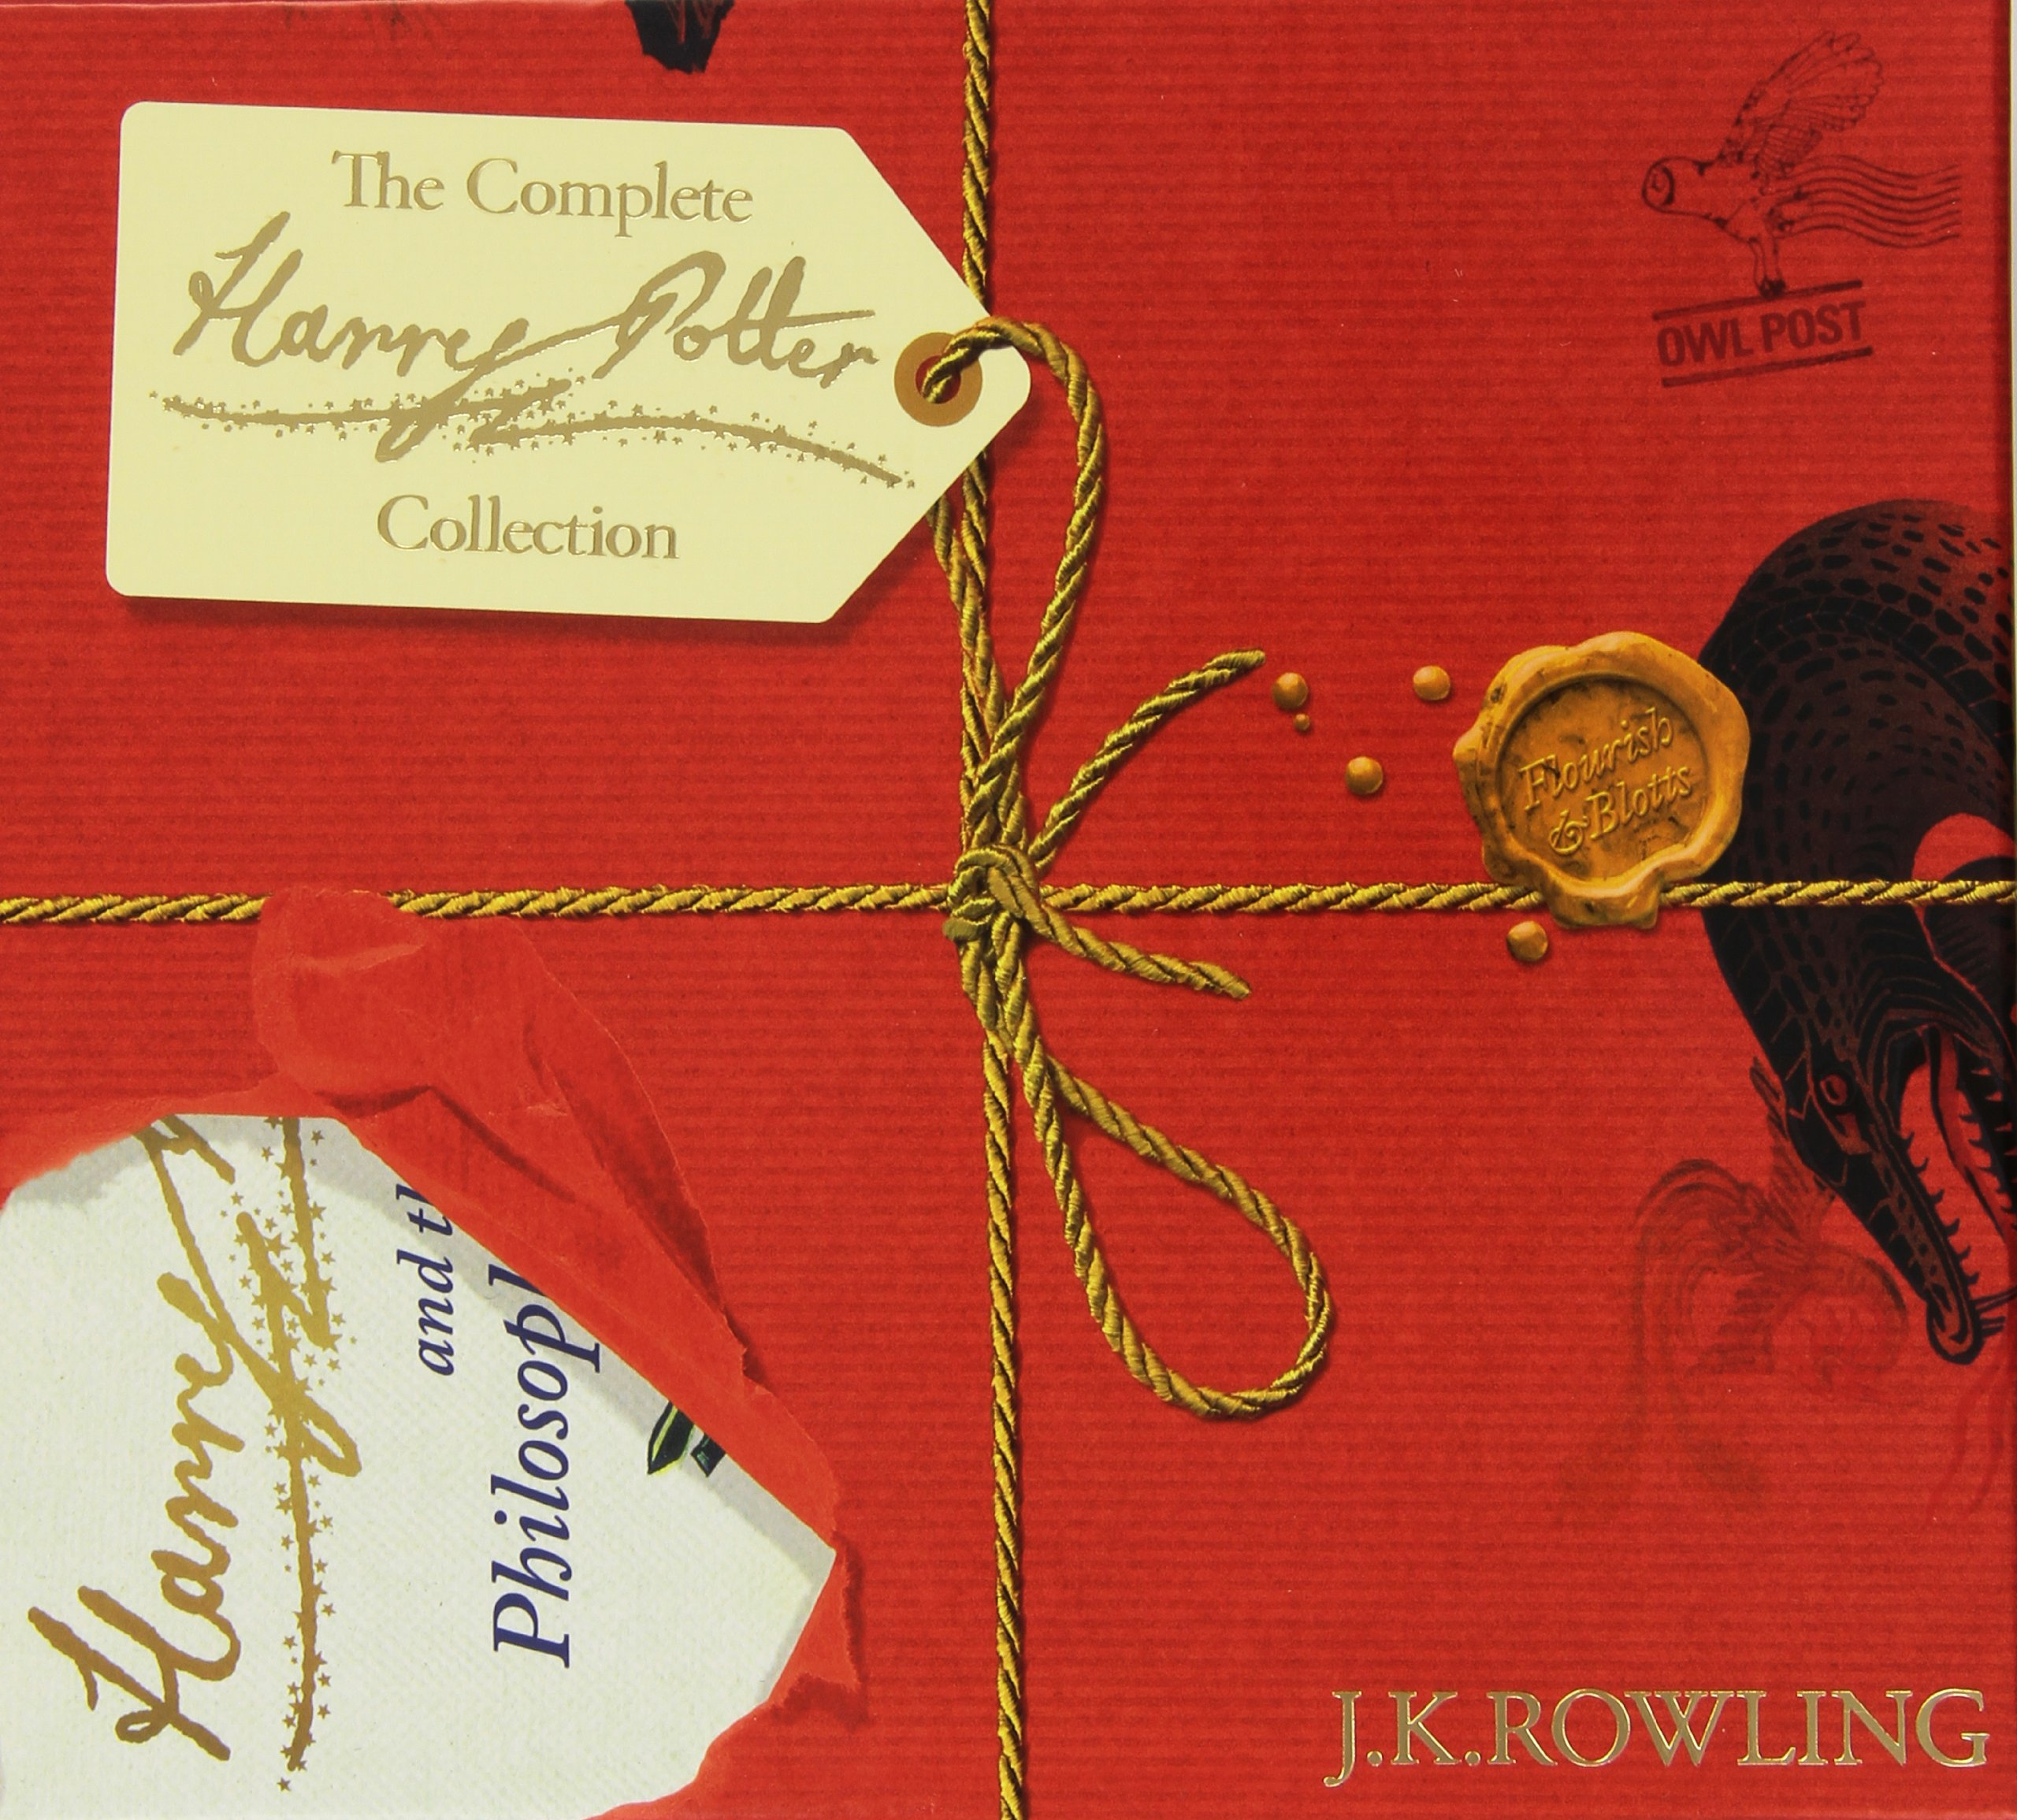 Harry Potter Book Prices : Bloomsbury harry potter books signature edition